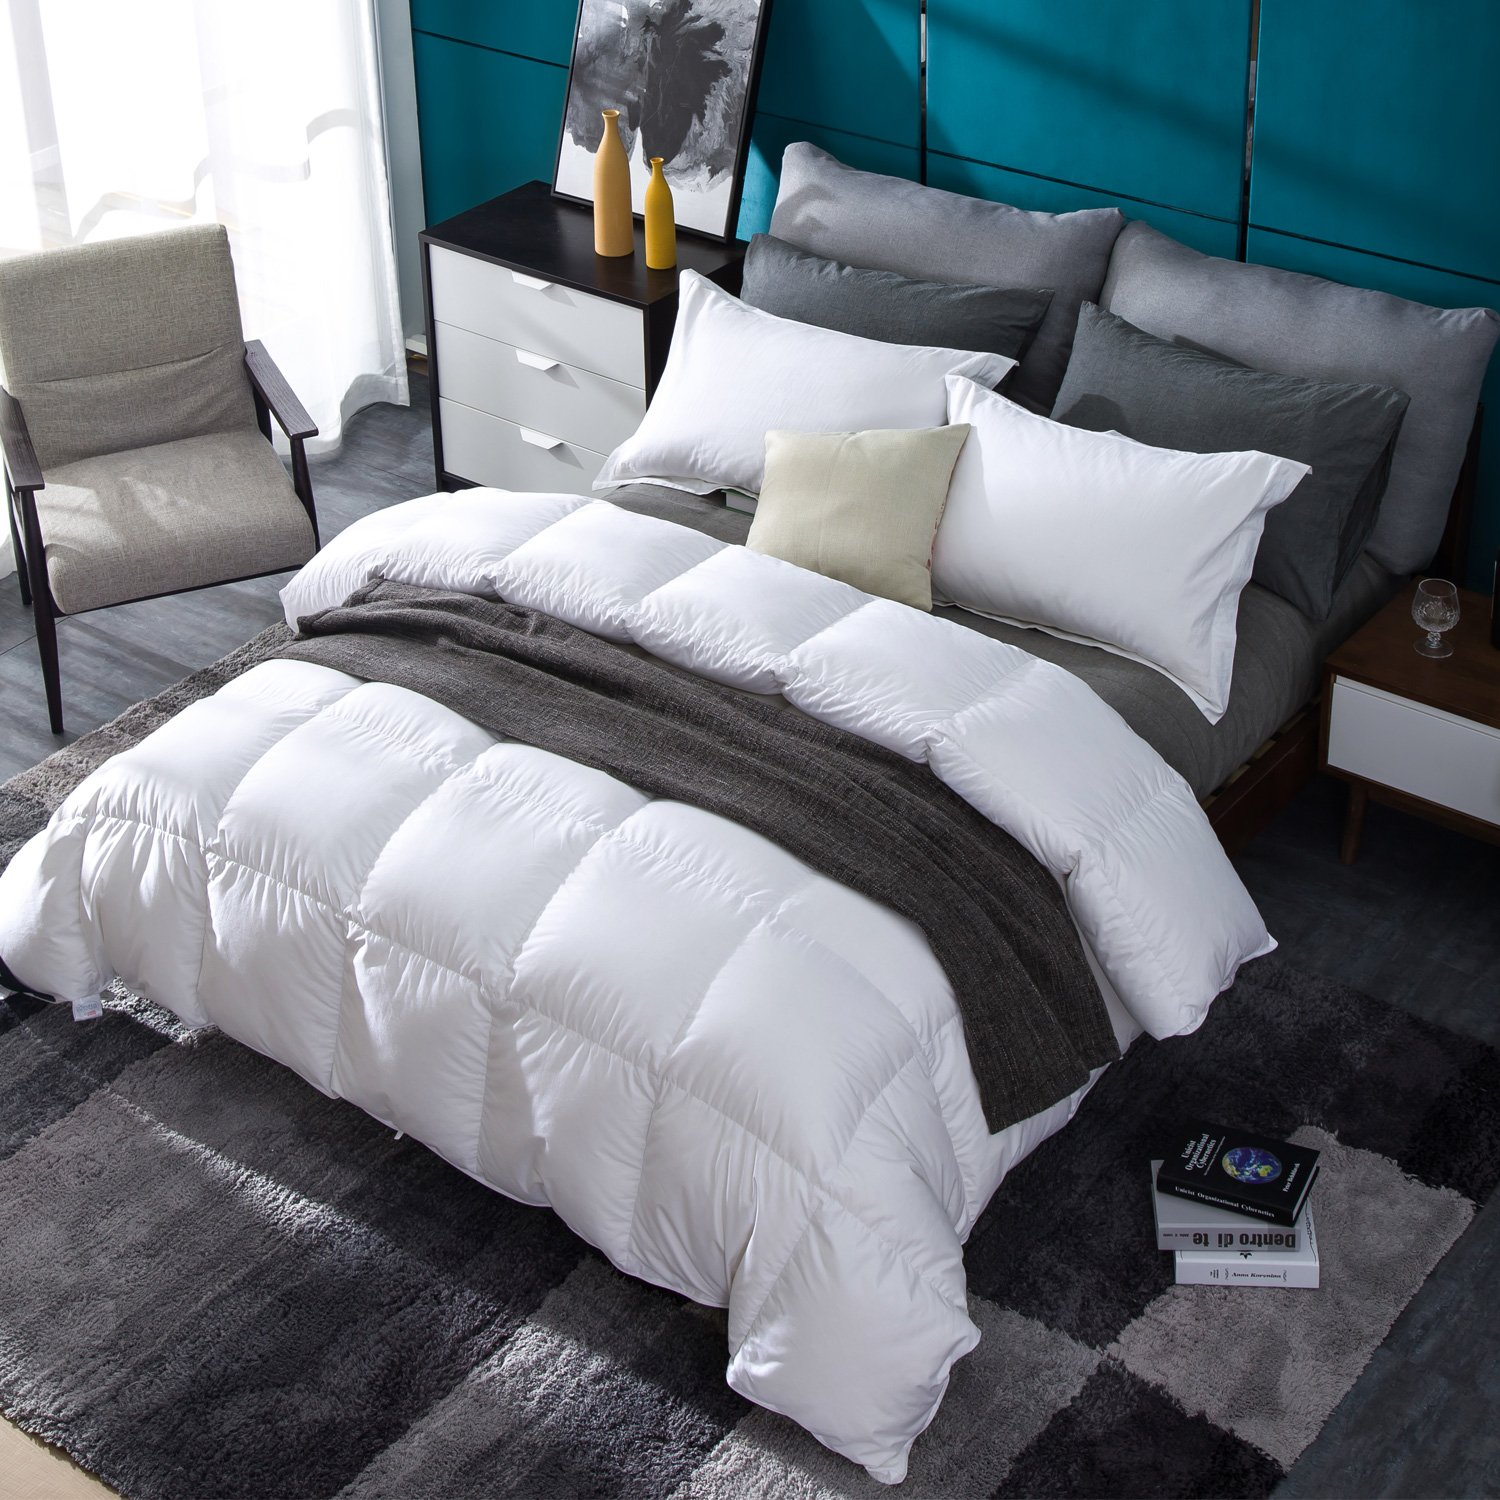 Globon Fusion Lavender Scented White Down Comforter Queen Size (90-Inch-by-90-Inch) 50oz, 300 Thread Count, 600 Fill Power, Heavyweight for Winter, with Corner Tabs,White XJMY-B17014CA